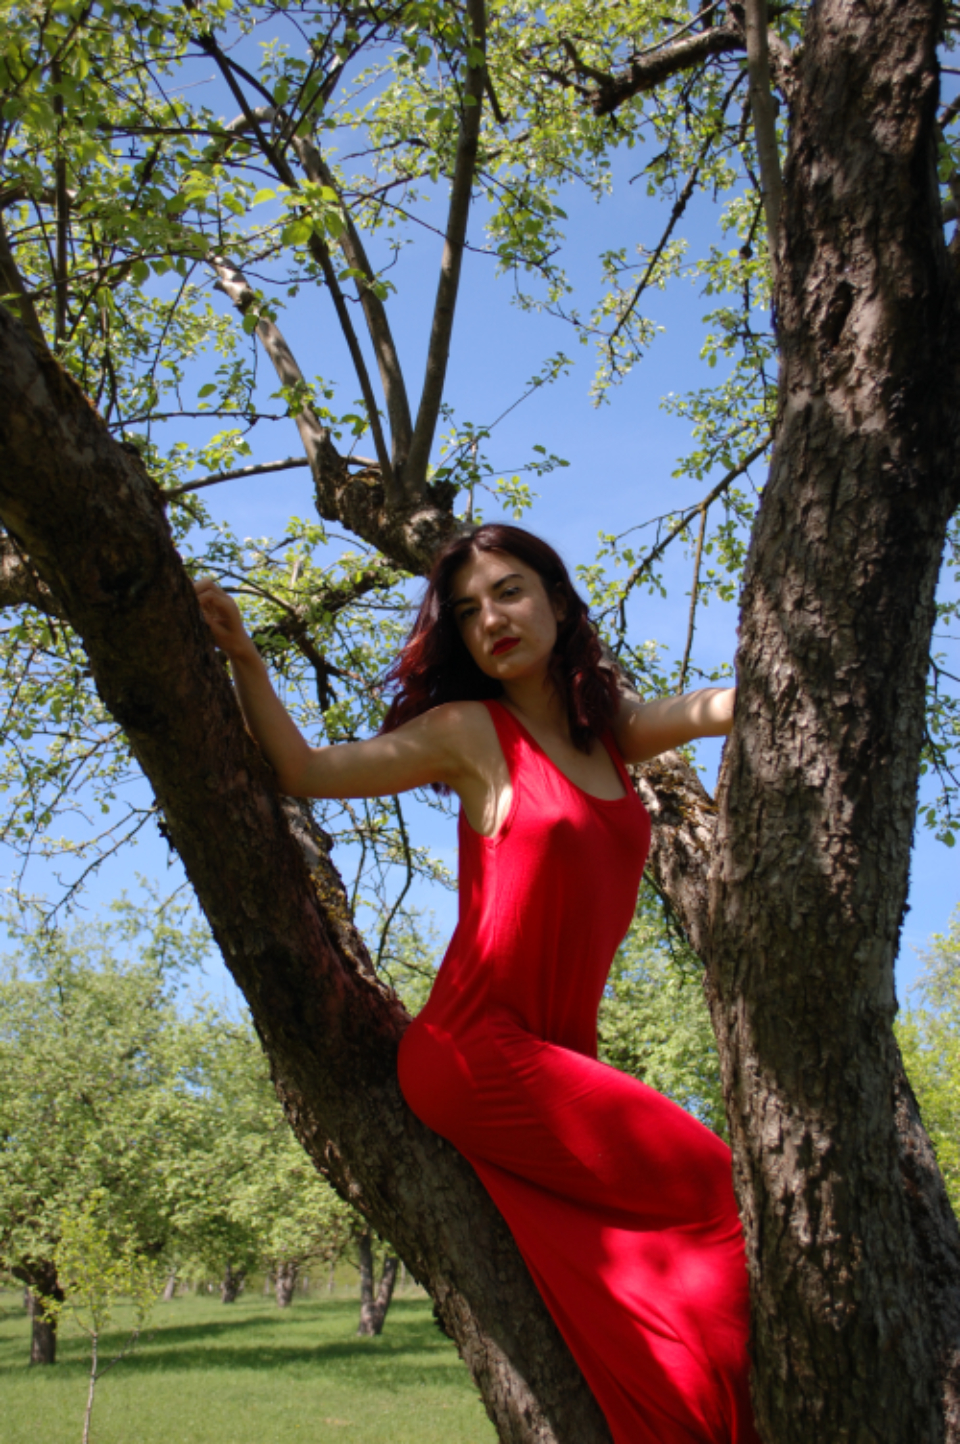 woman dress tree park nature female girl red dress blue sky.